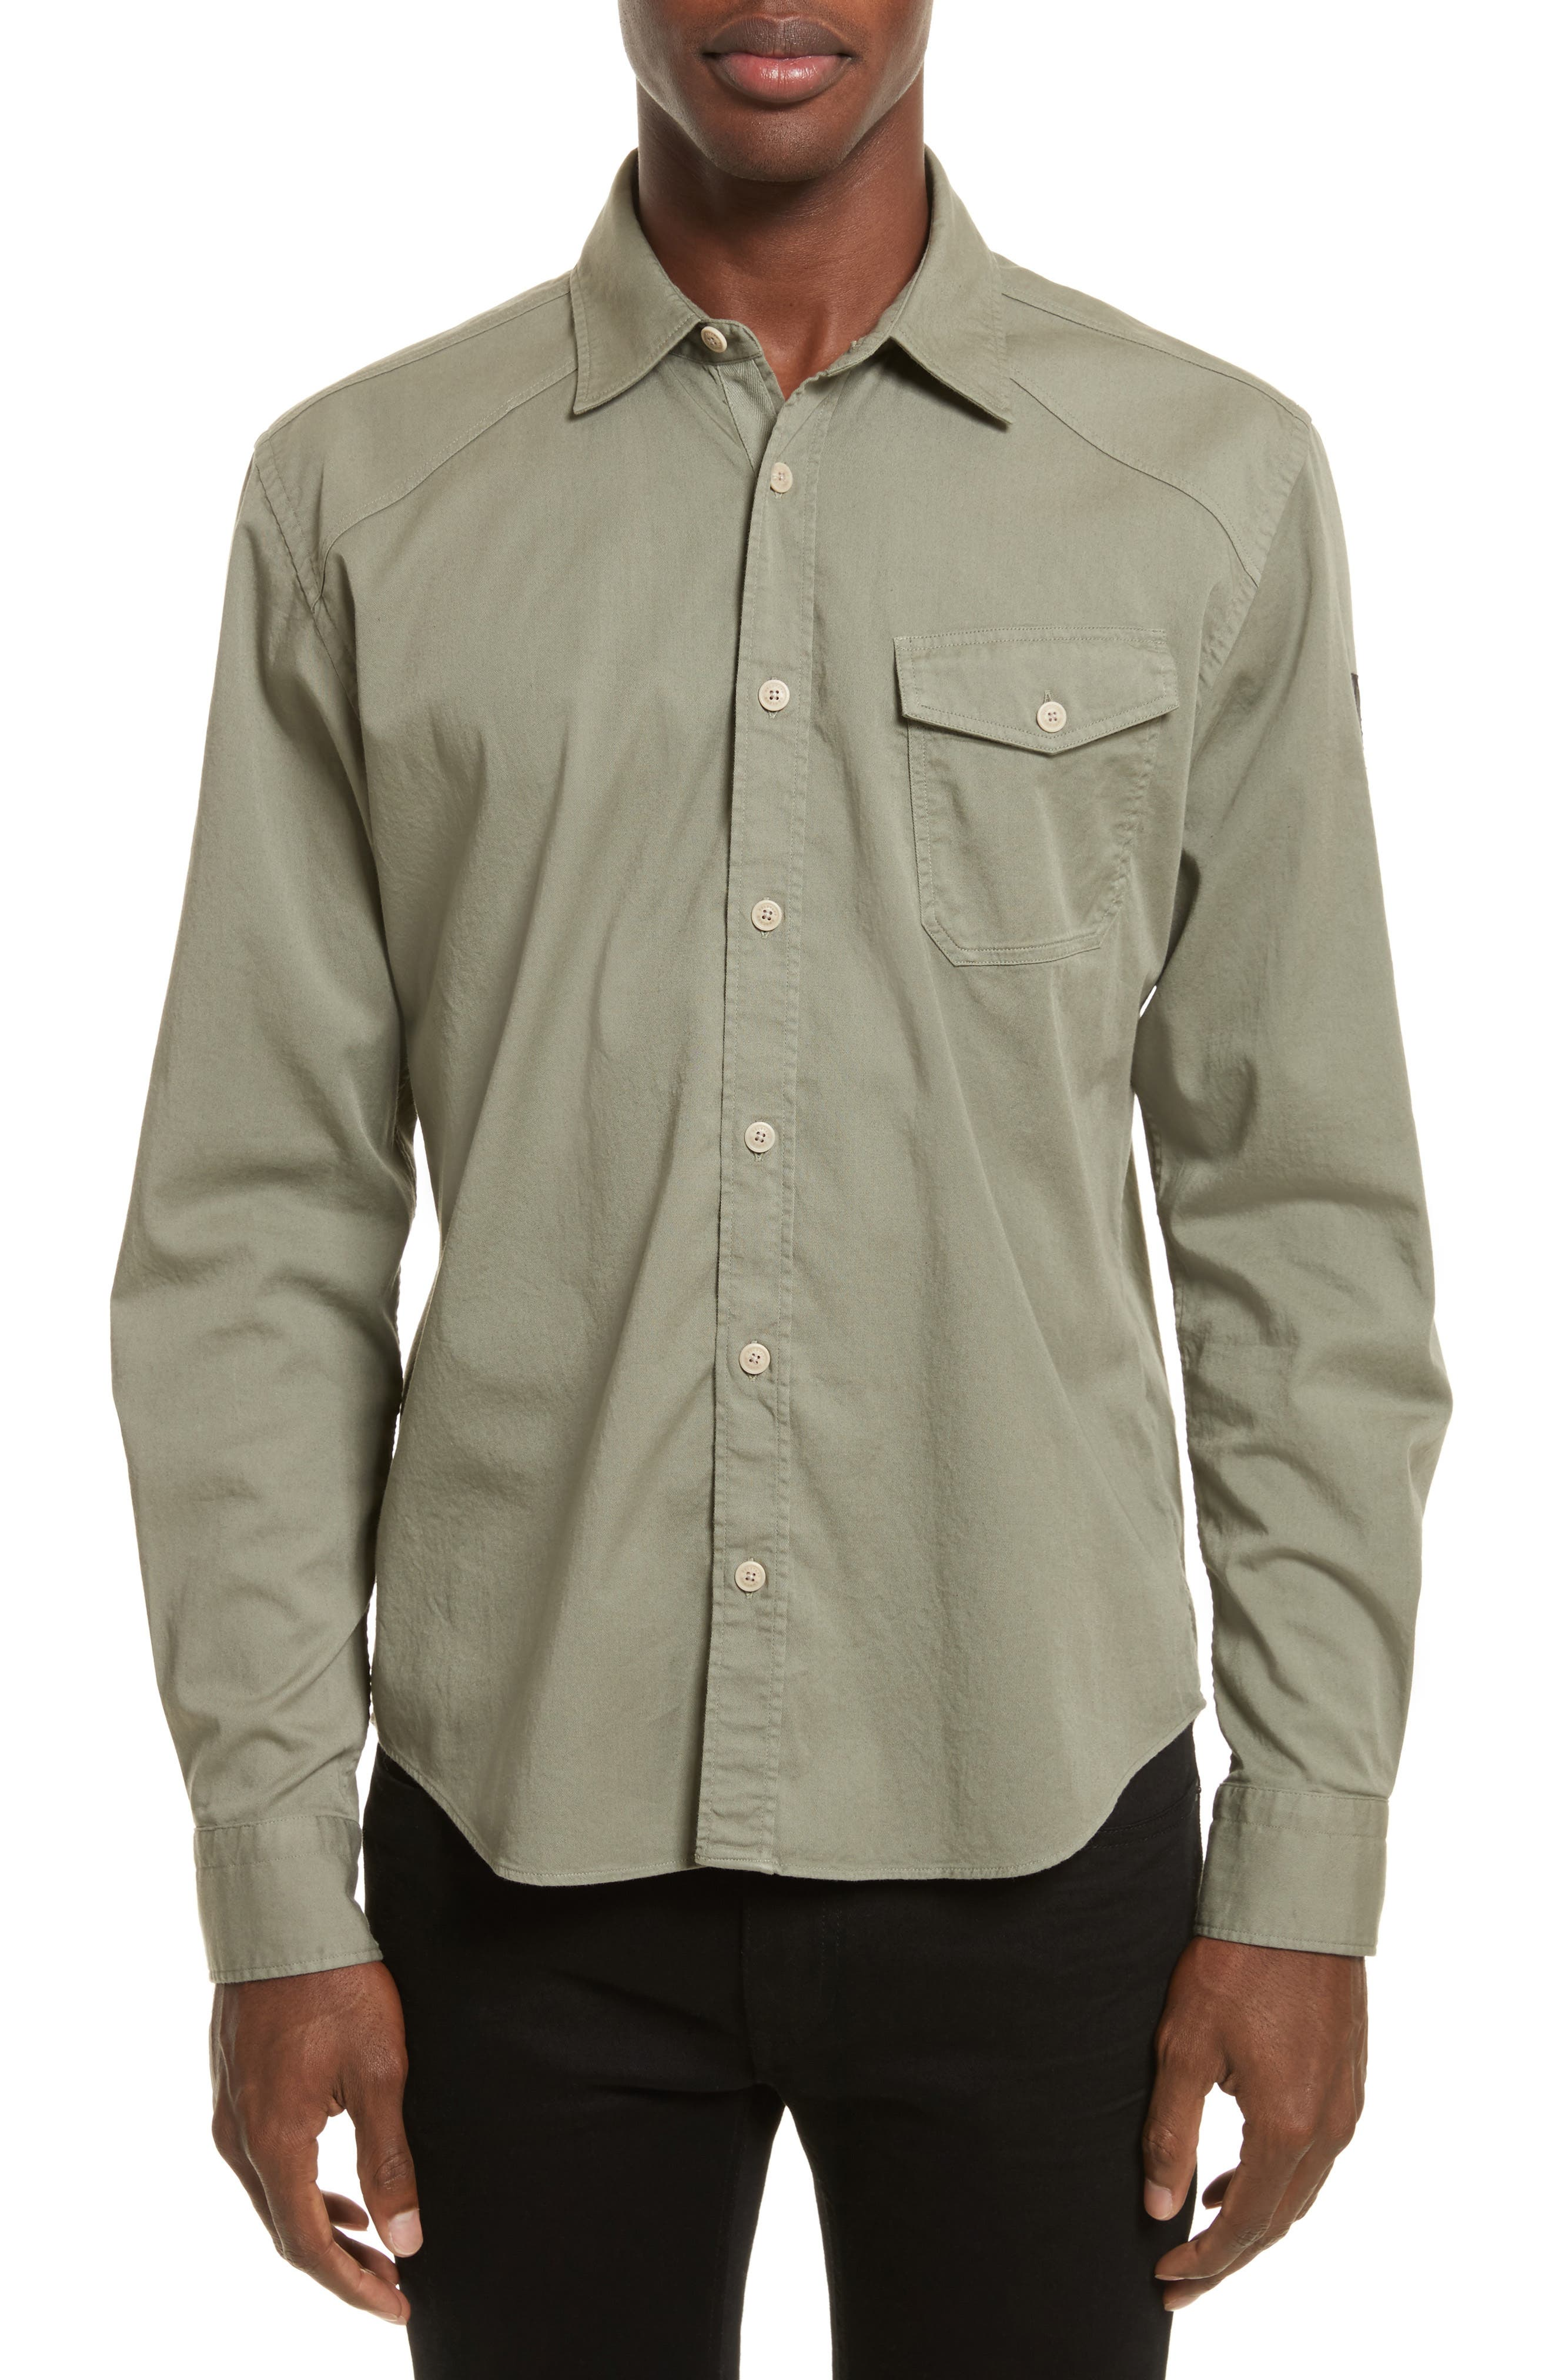 Steadway Extra Slim Fit Sport Shirt,                             Main thumbnail 1, color,                             033